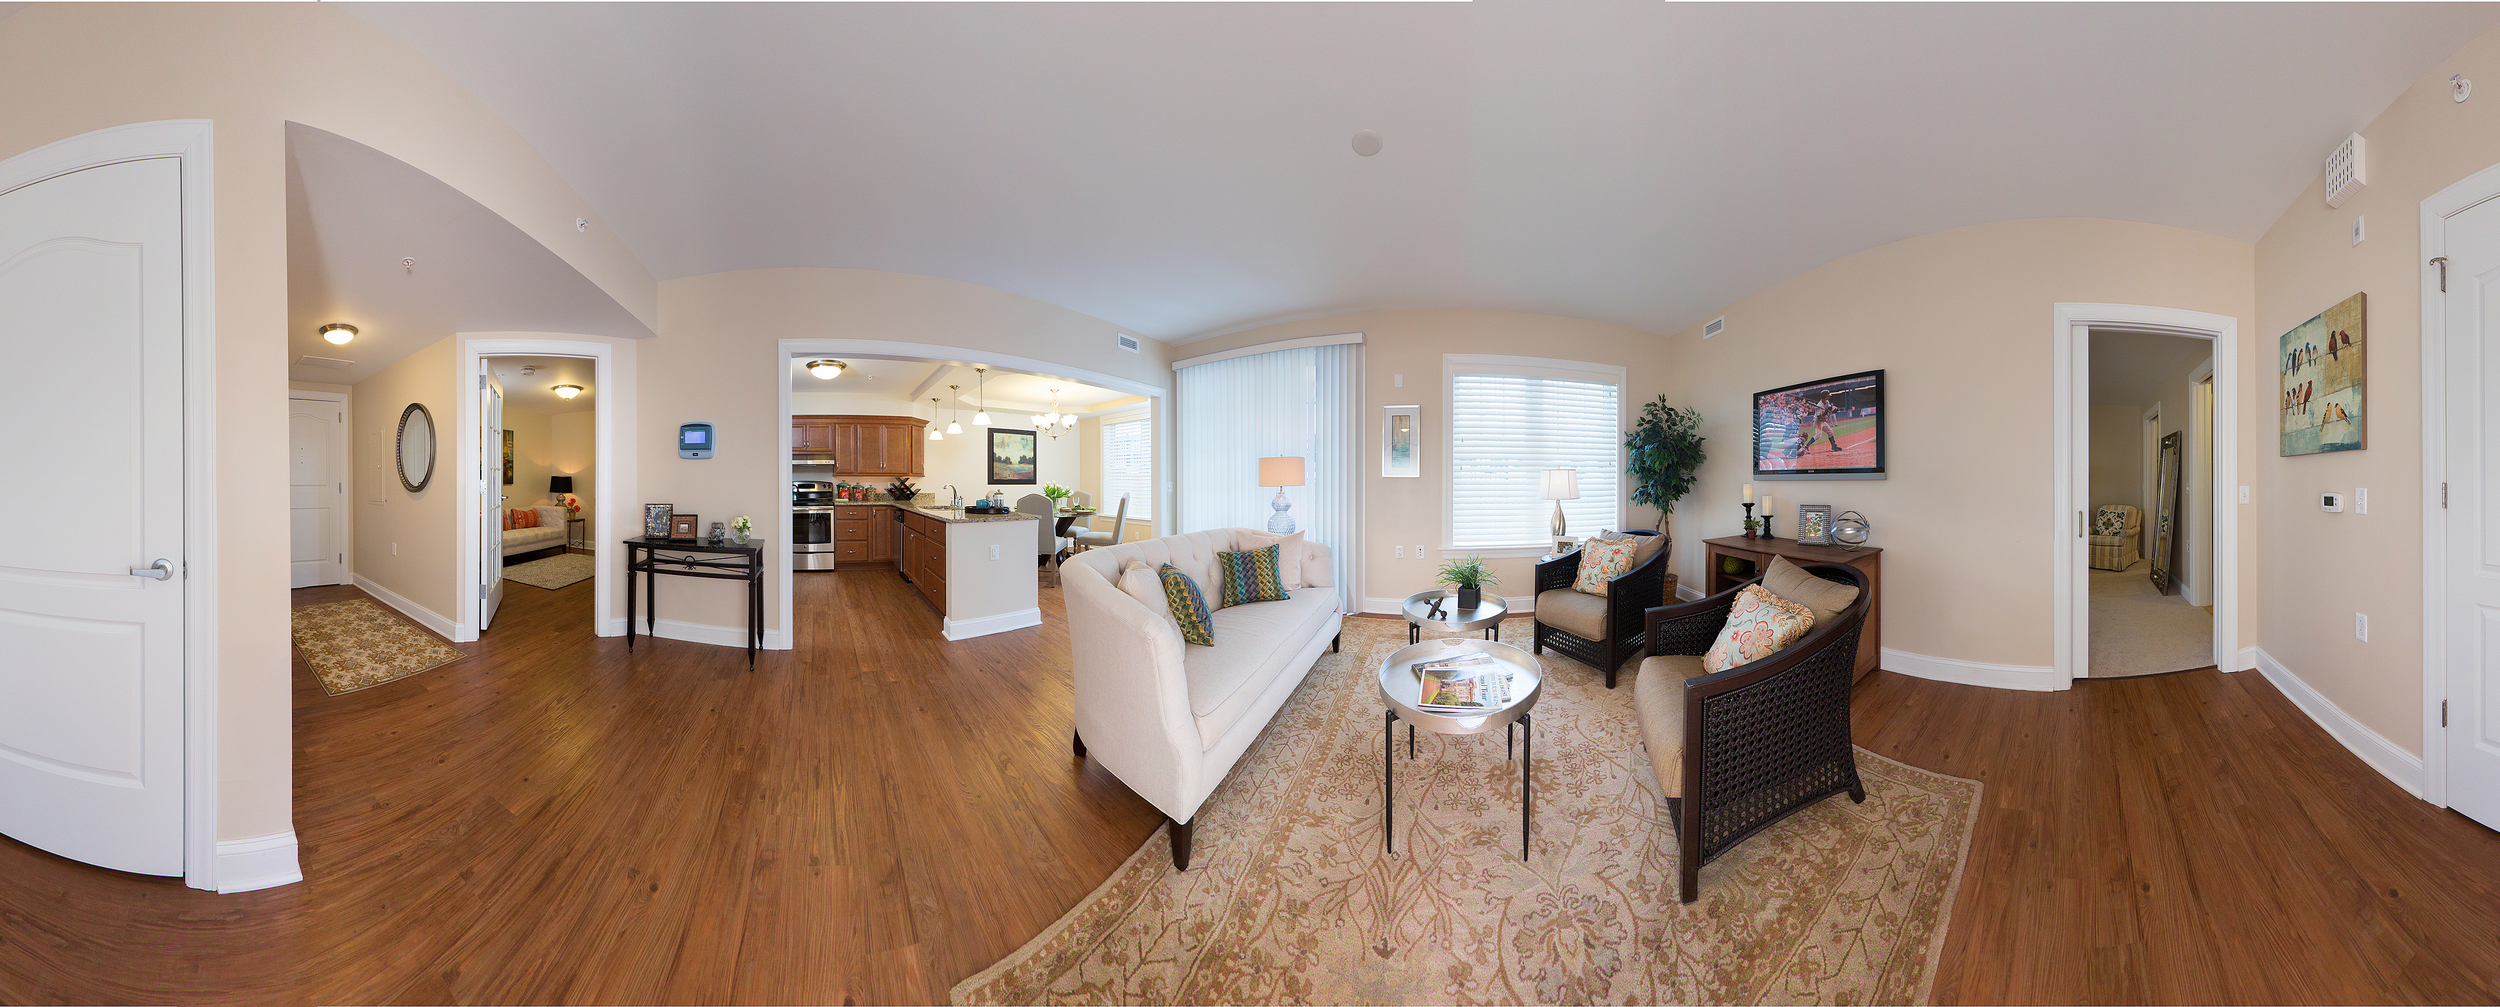 360 degree panoramic photo of living room by Craig Anderson Photography Inc